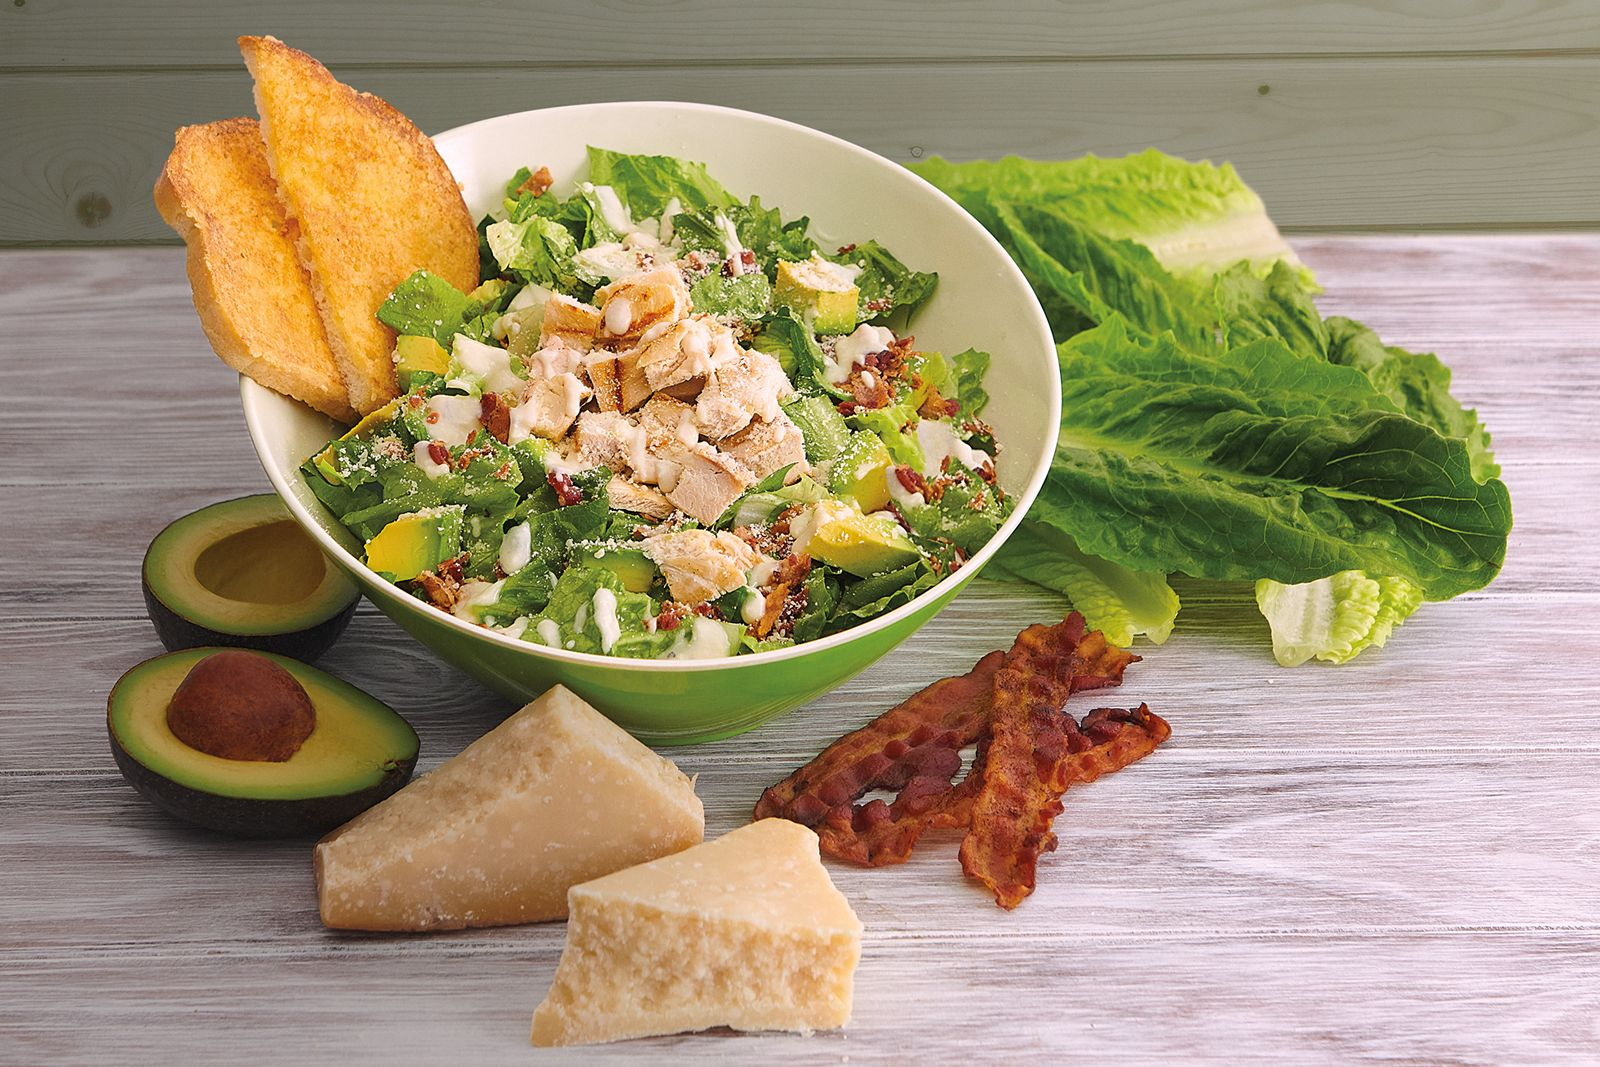 Farmer Boys Launches Two Limited-Time Offerings for Summer